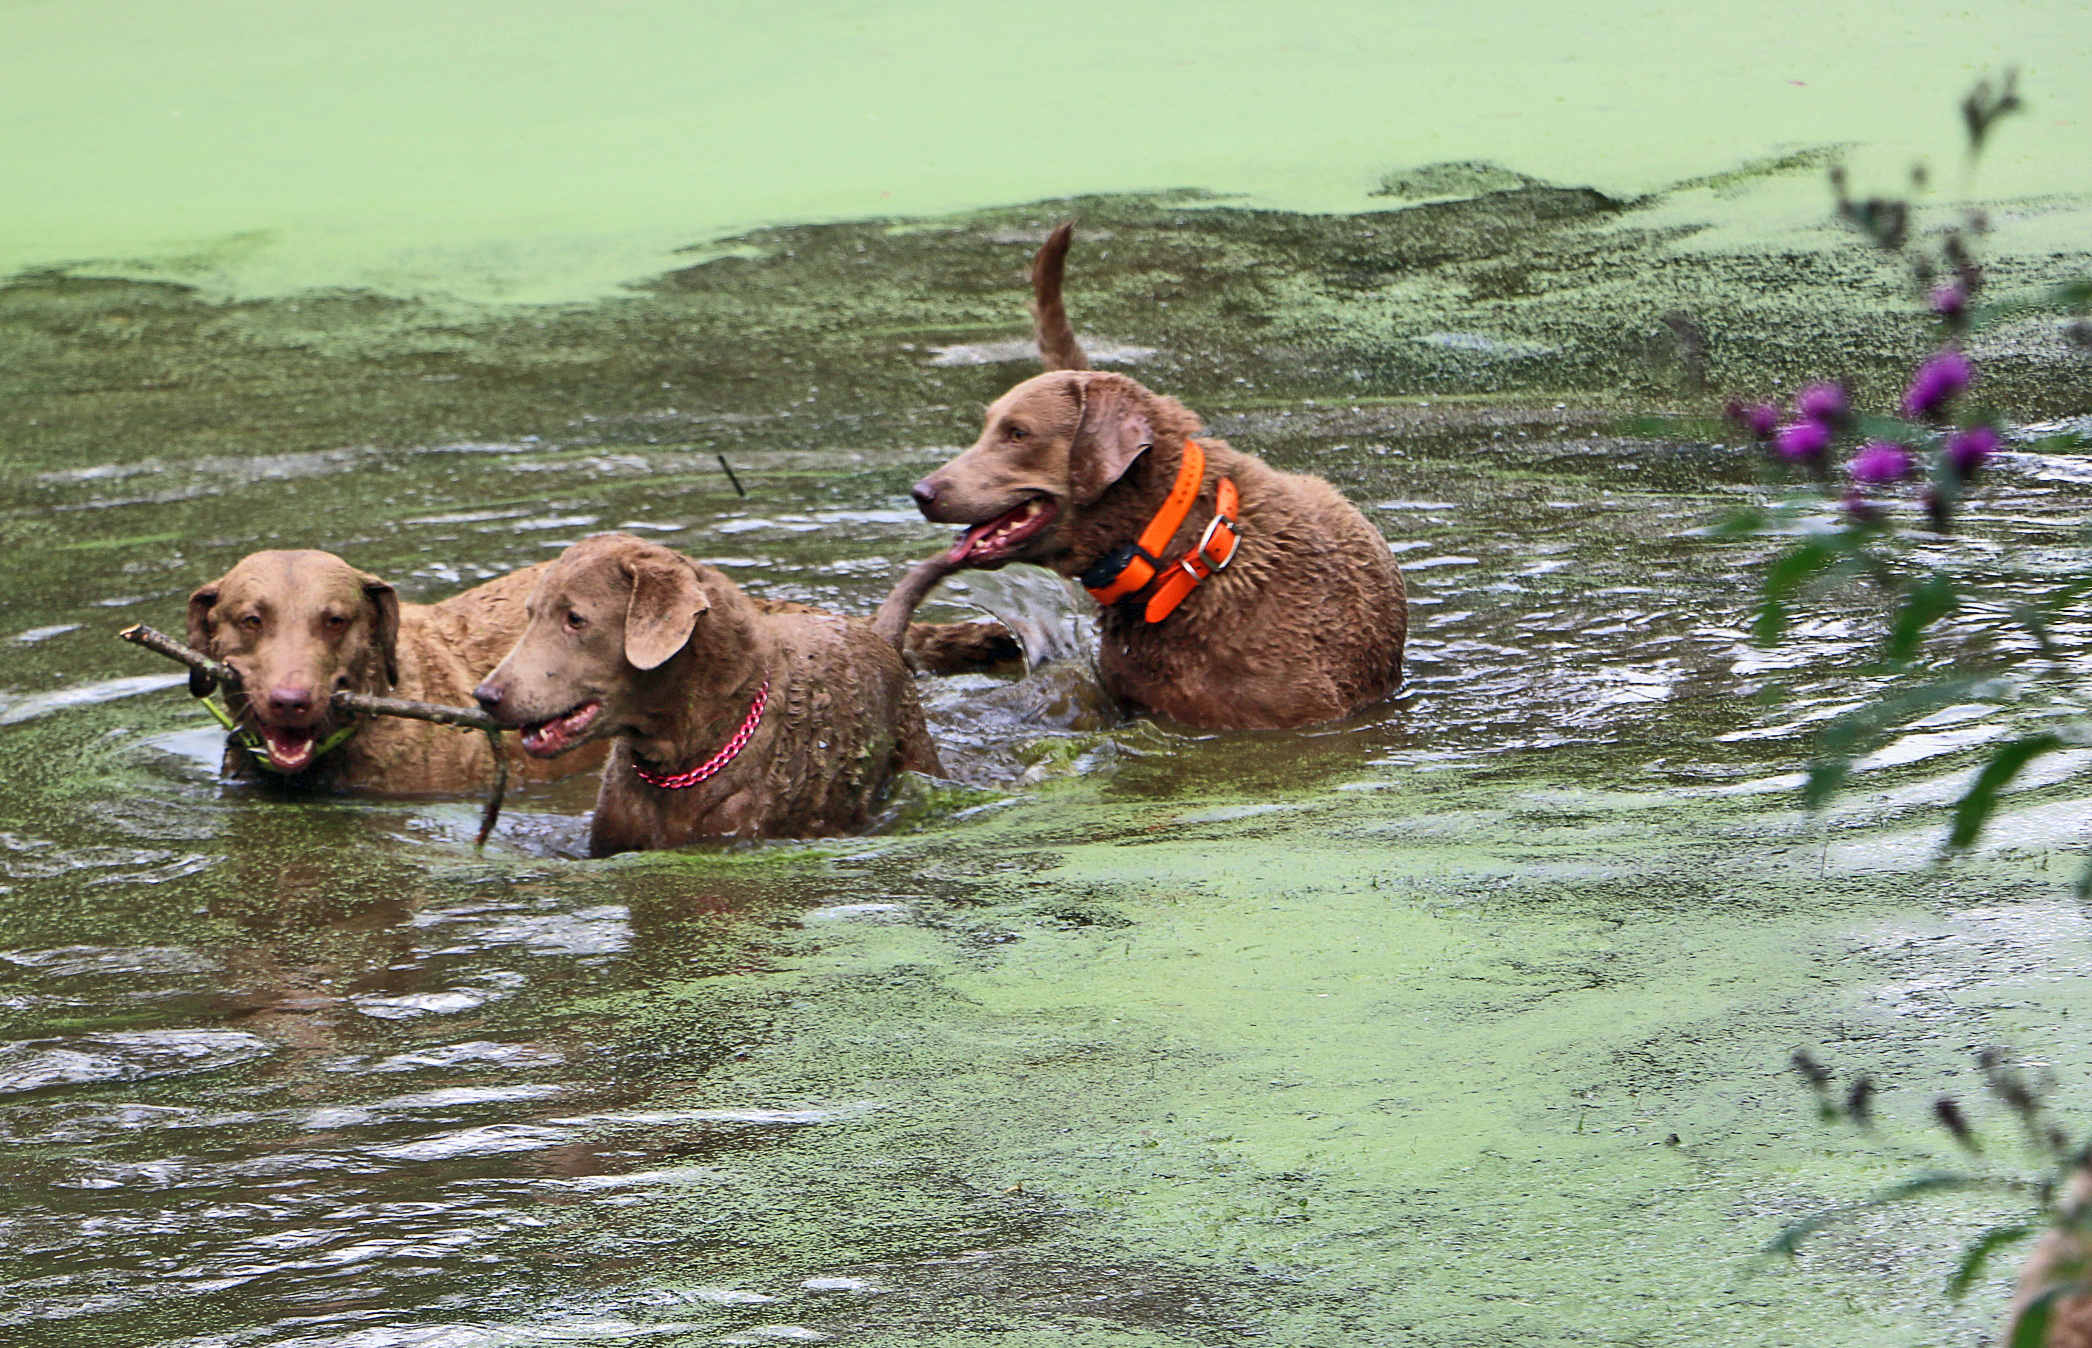 ICK. TOXIC ALGAE BLOOMS: TOXIC TO DOGS, SICKENING TO PEOPLE